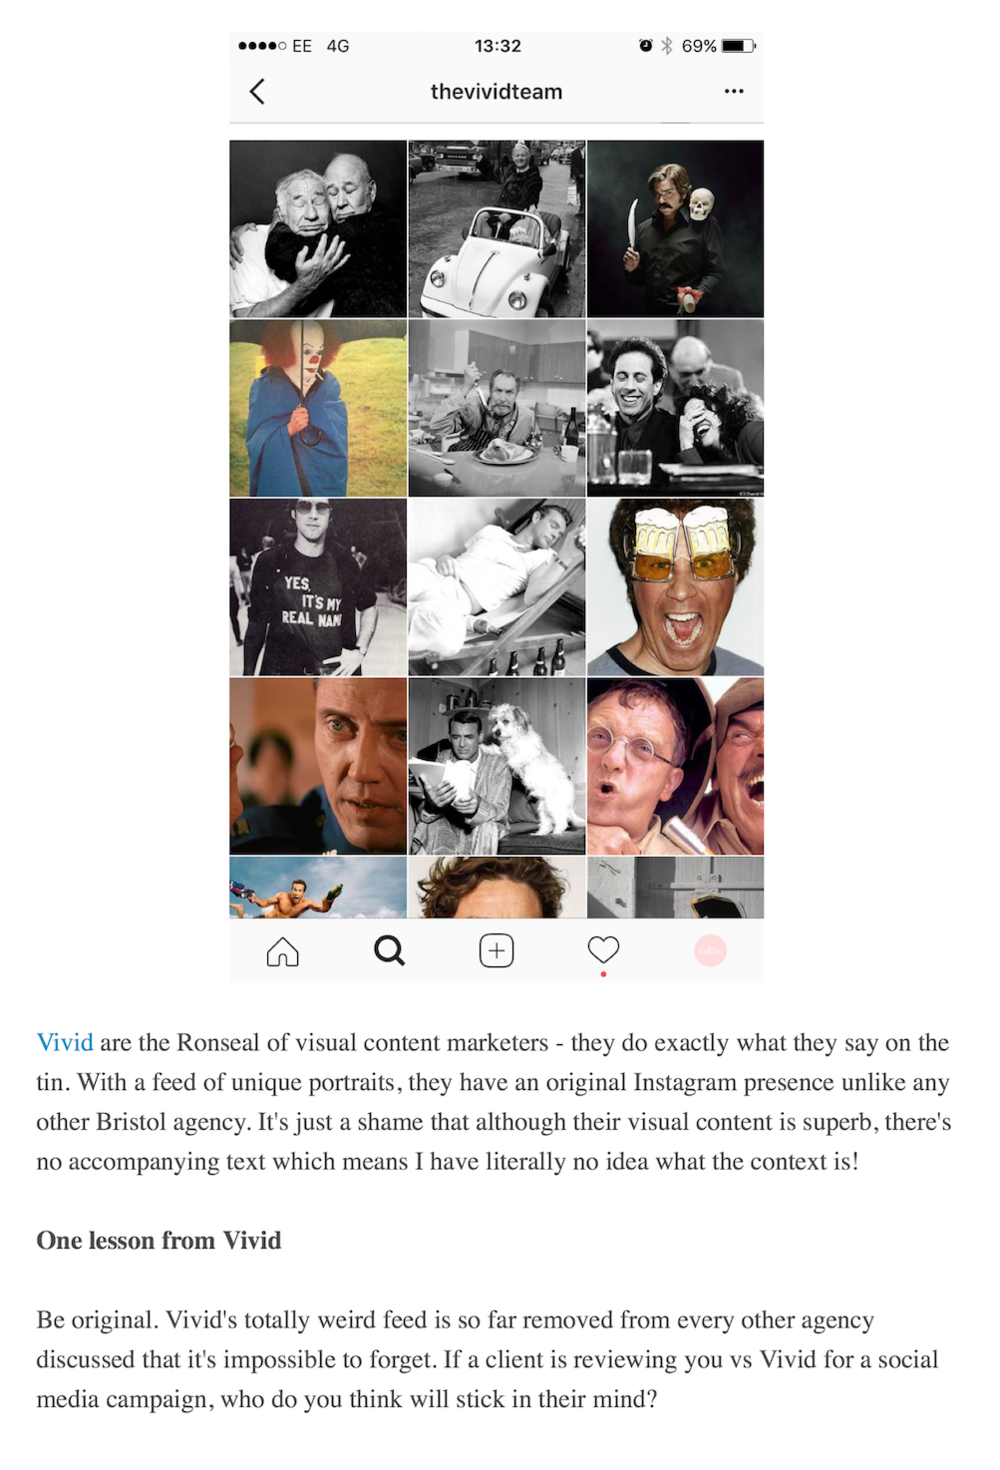 Aime's lovely review of Vivid's Instagram feed. You can read the full article here.